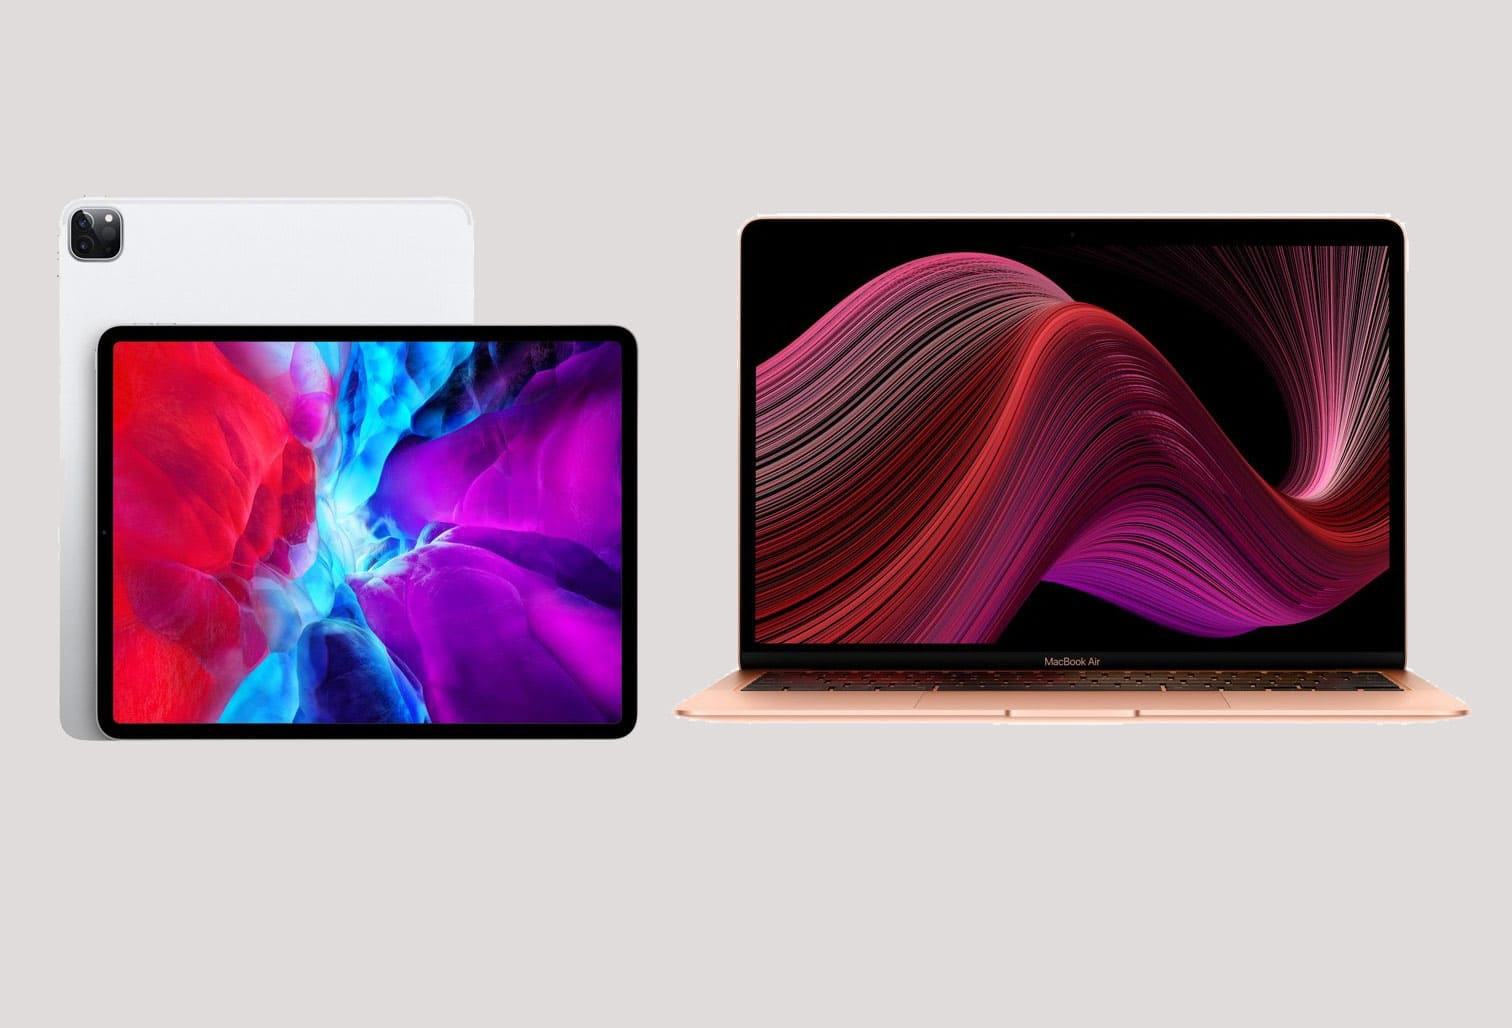 L'iPad Pro 2020 a le WiFi 6 mais pas le nouveau MacBook Air